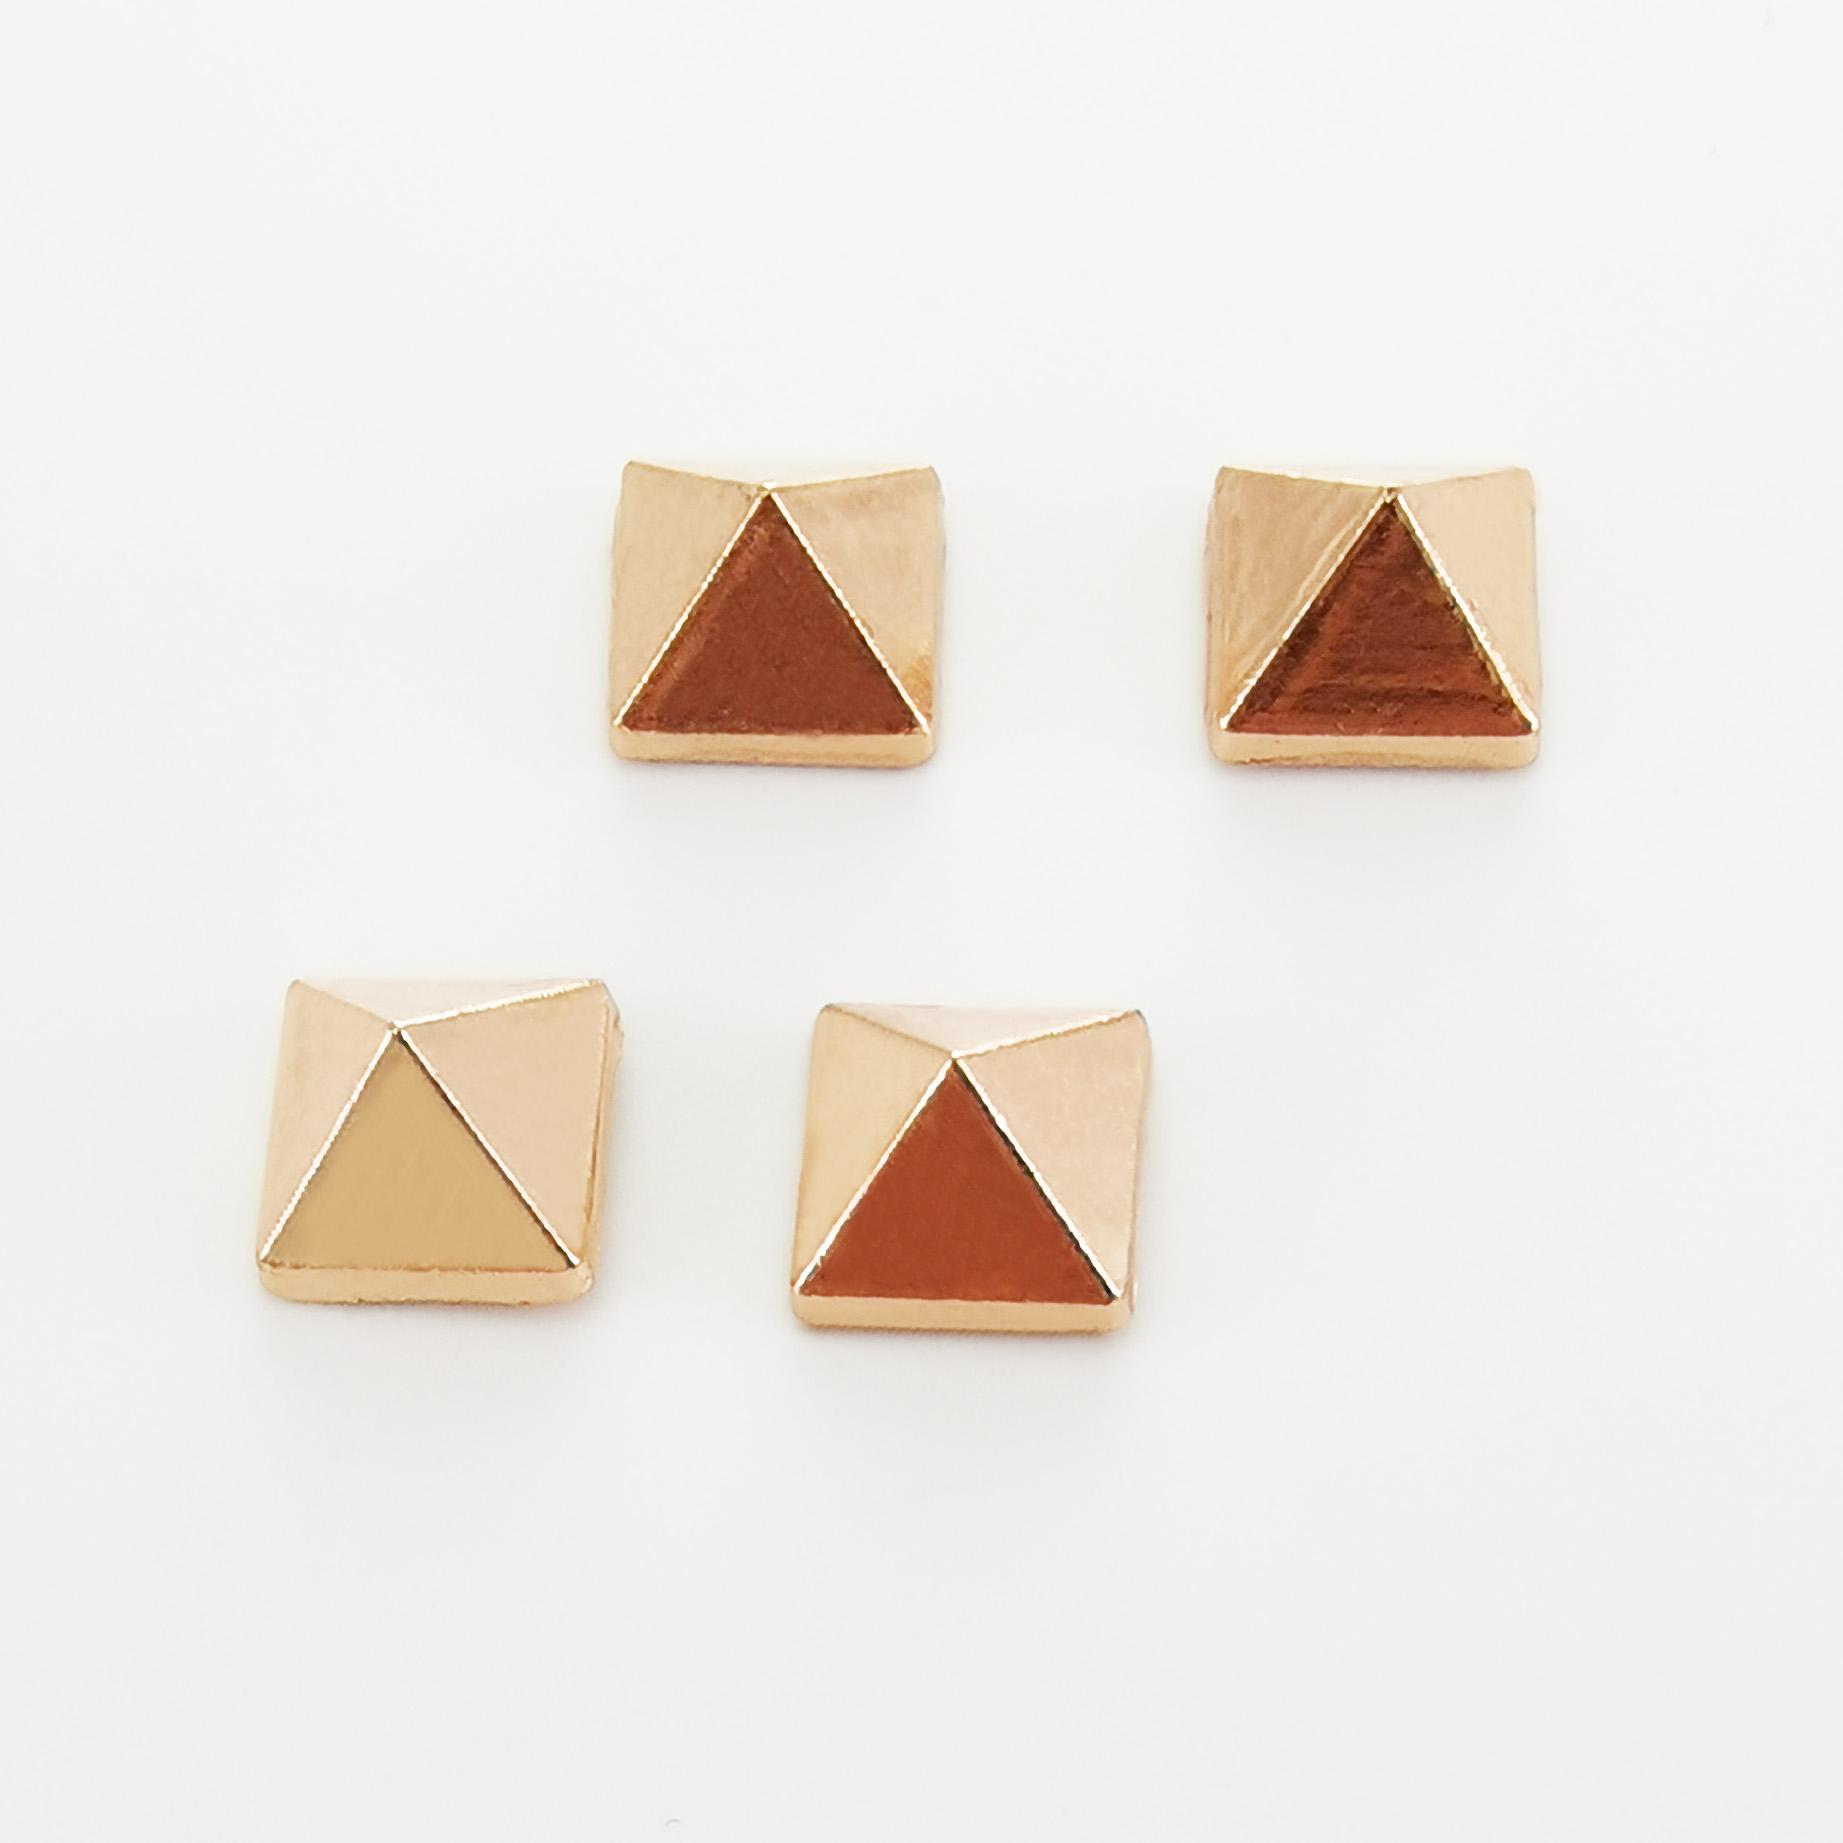 Metal  Pyramid Spike  Button Rivet  Decoration For Leather Products